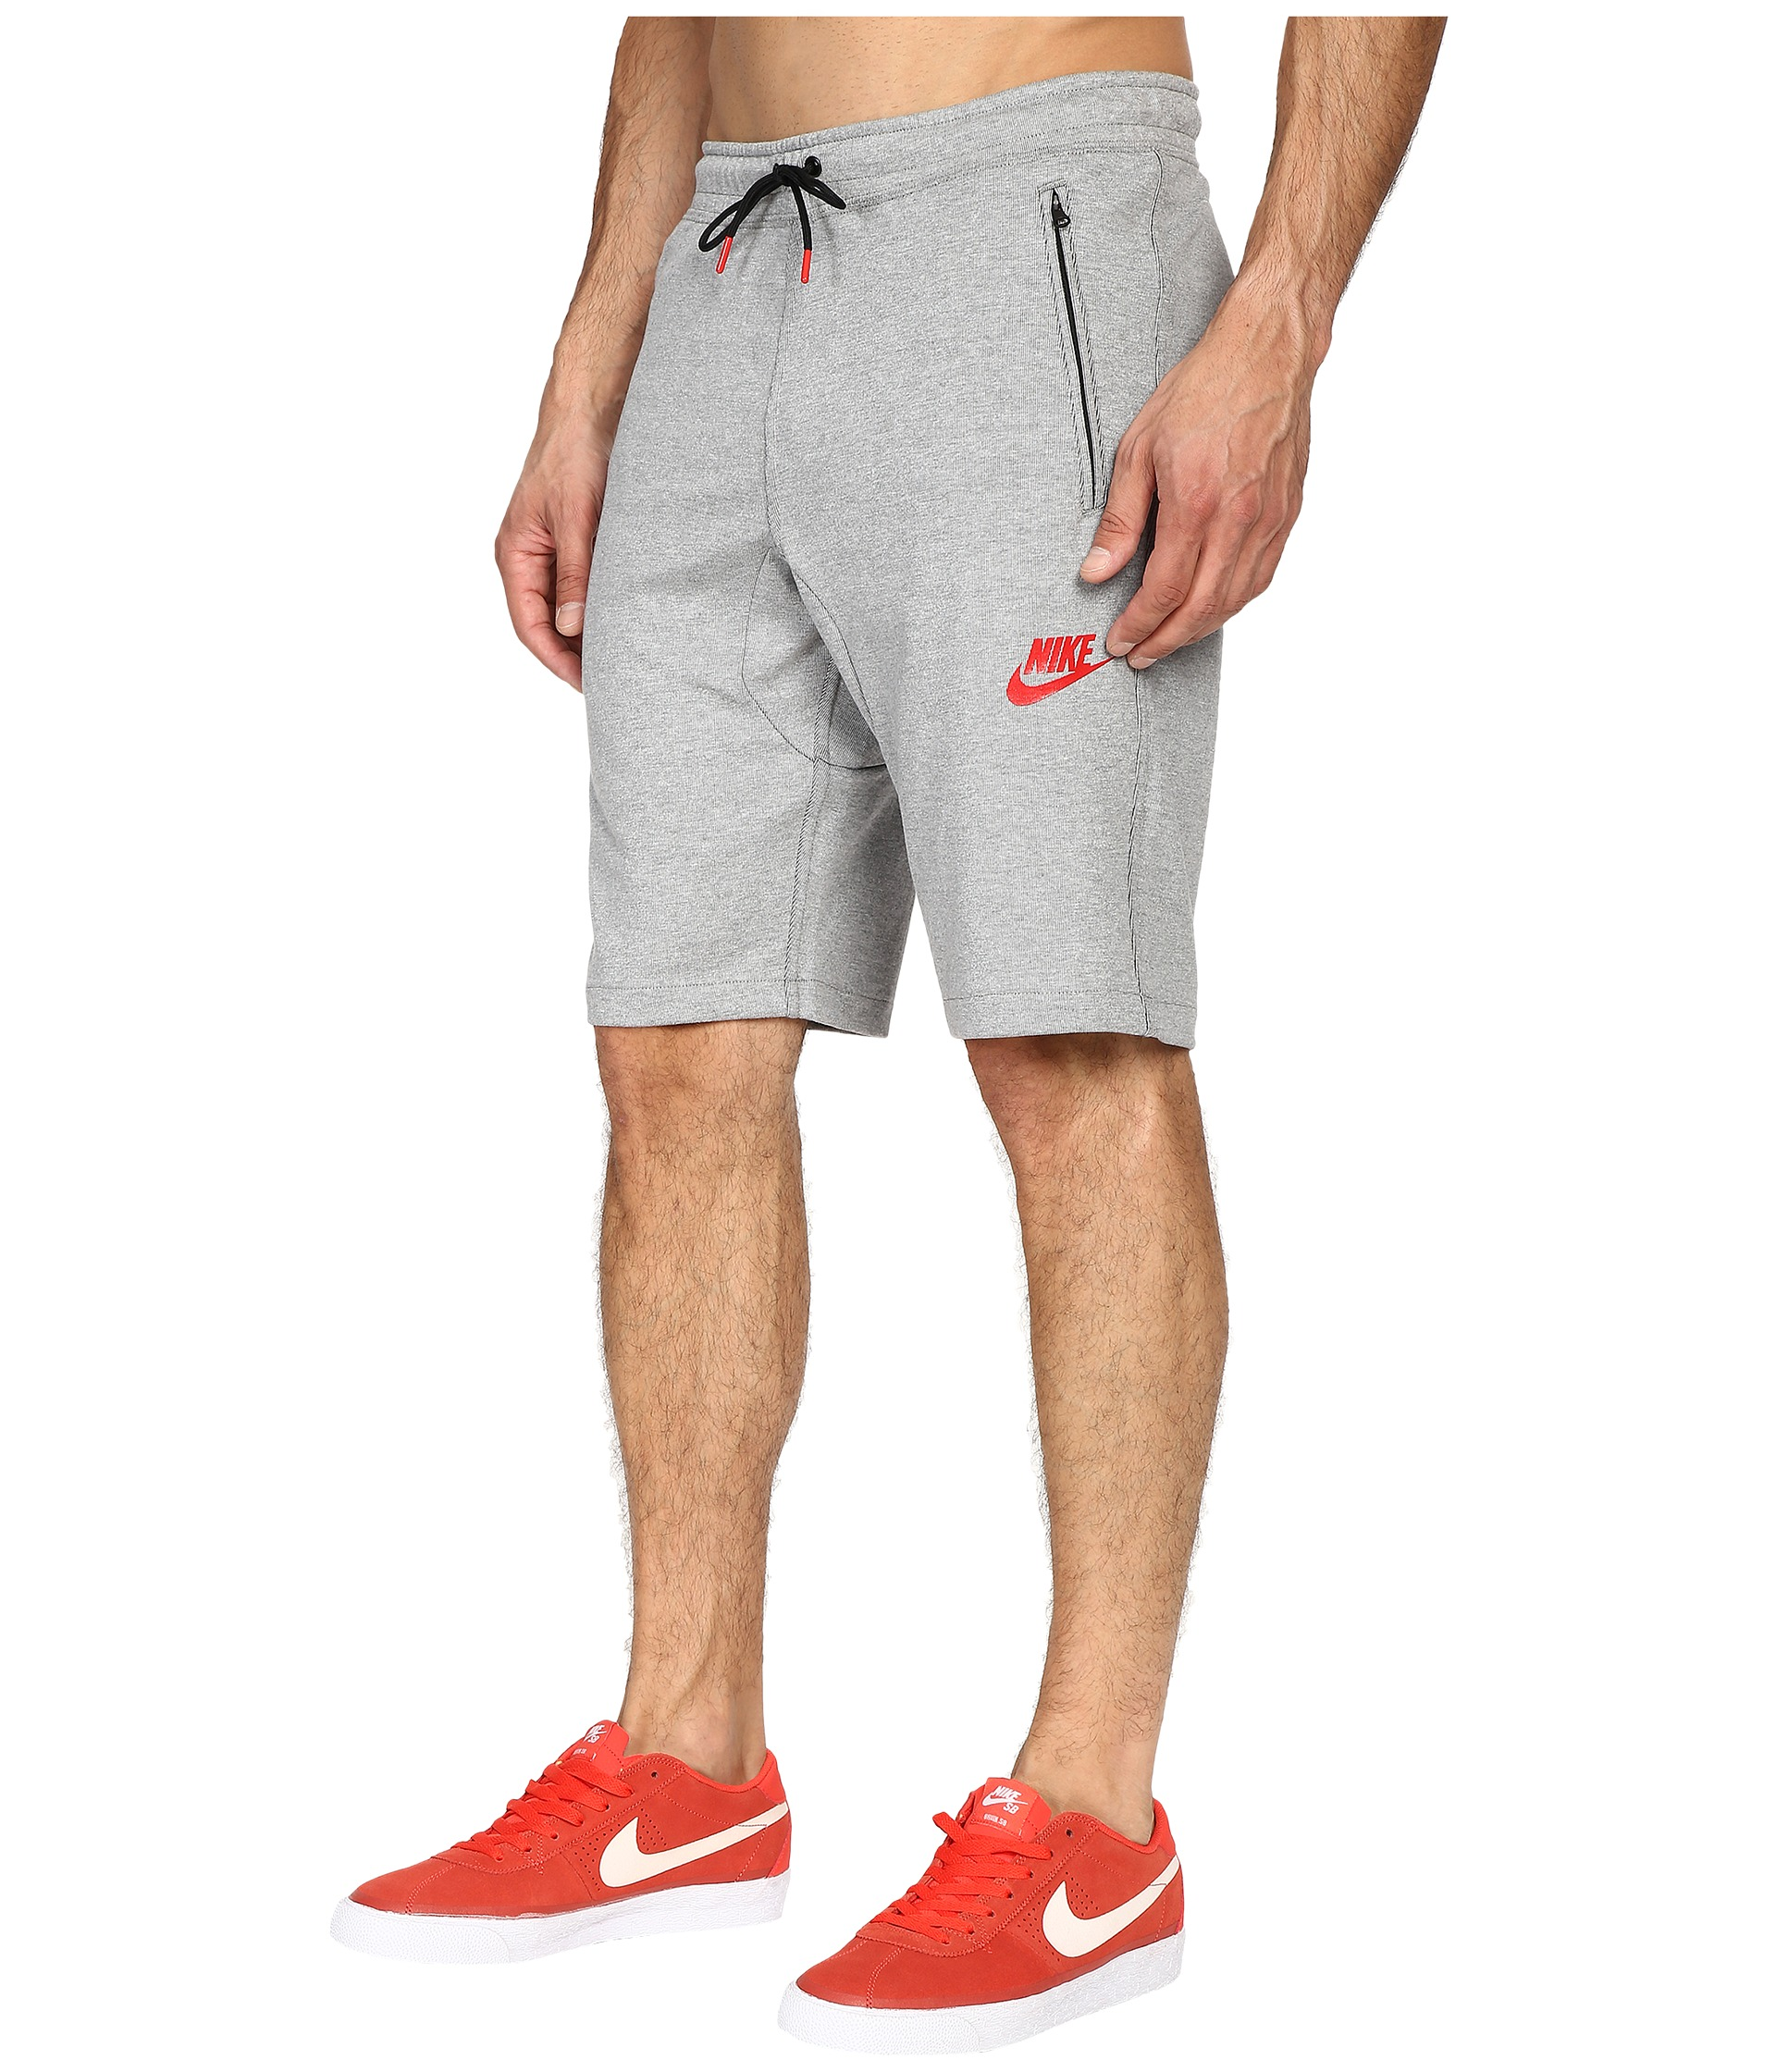 nike 5 gato especial - Nike NSW AV15 Fleece Shorts - Zappos.com Free Shipping BOTH Ways